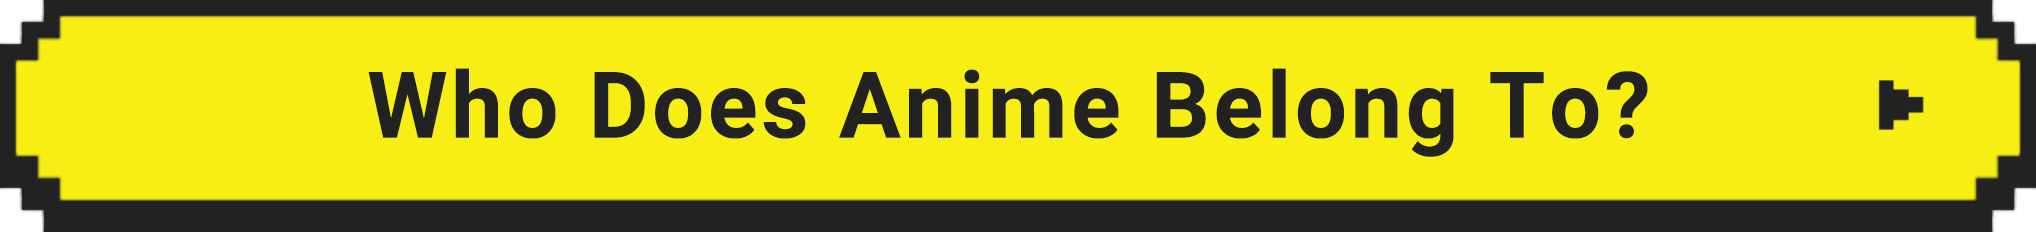 Who Does Anime Belong To?